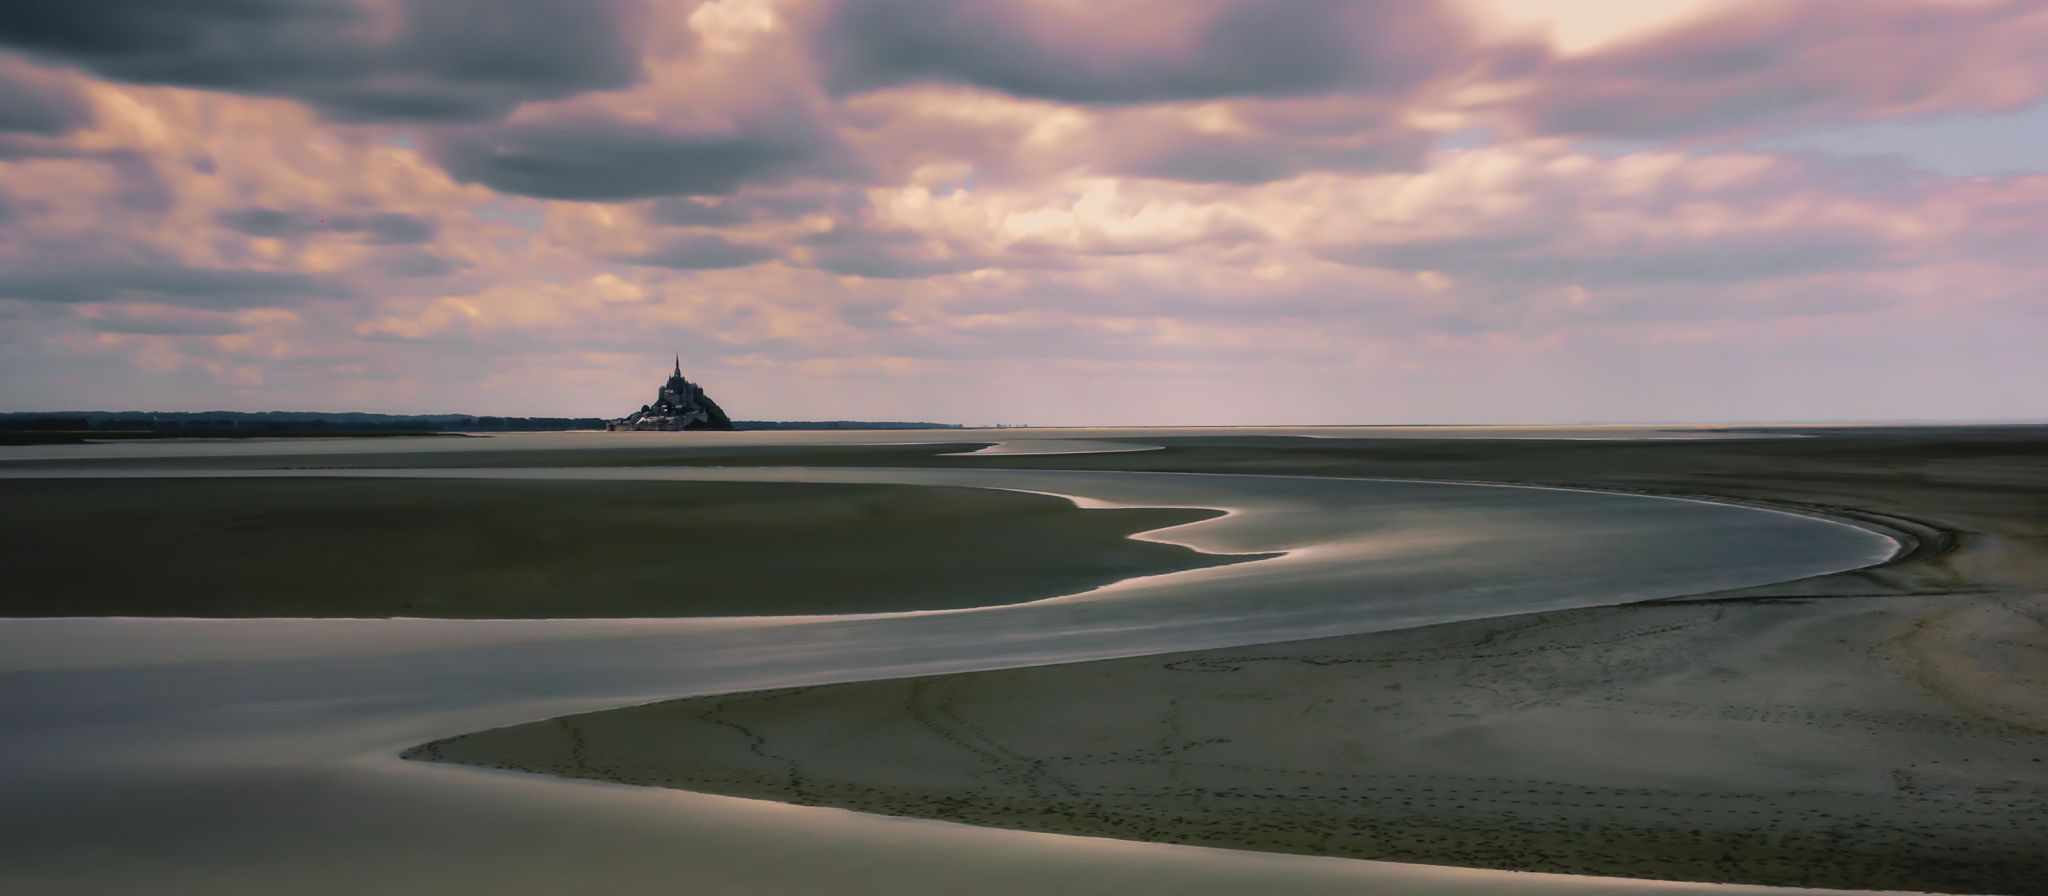 Game of light and shadow, Baie du Mont Saint-Michel, France